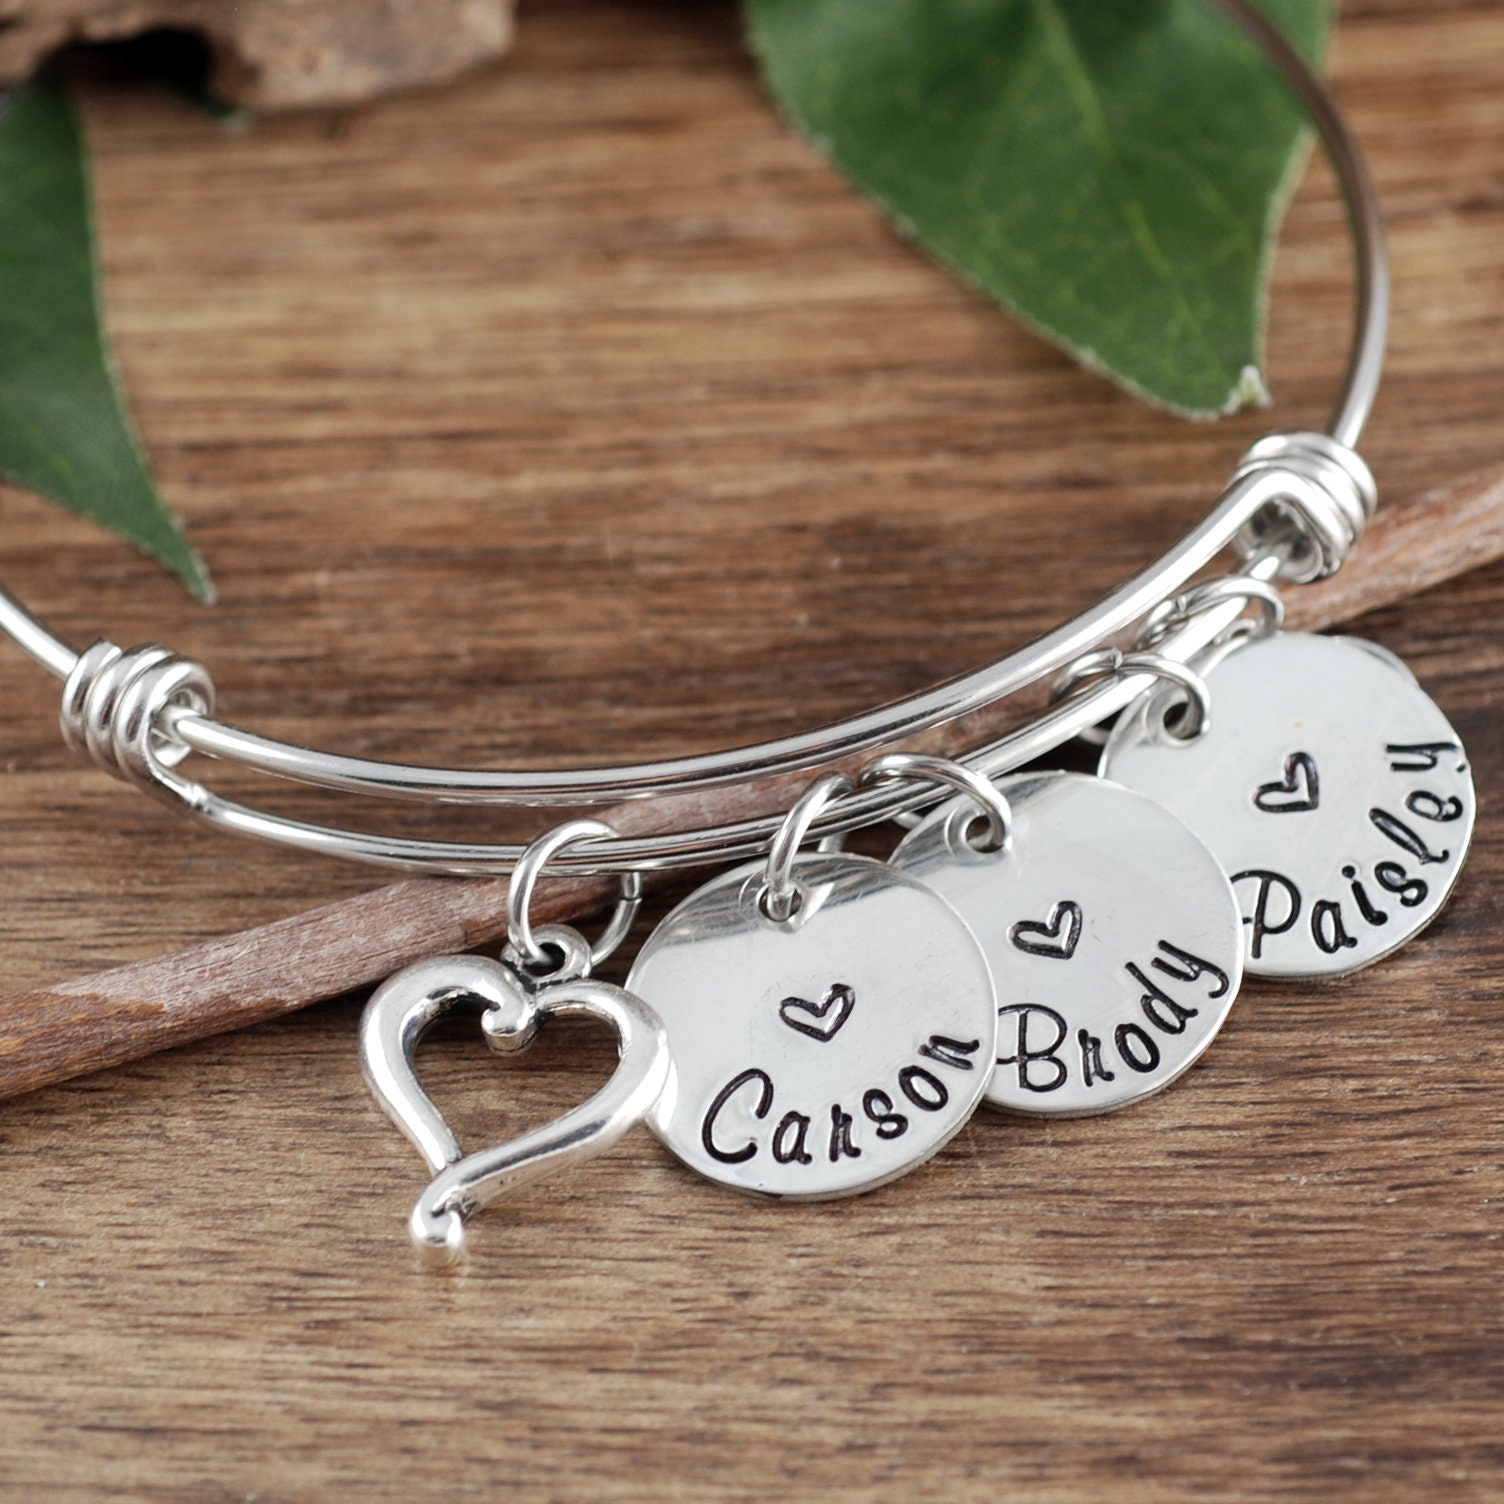 Mothers Charm Bracelet: Personalized Mother's Day Bracelet, Name Bracelet For Mom